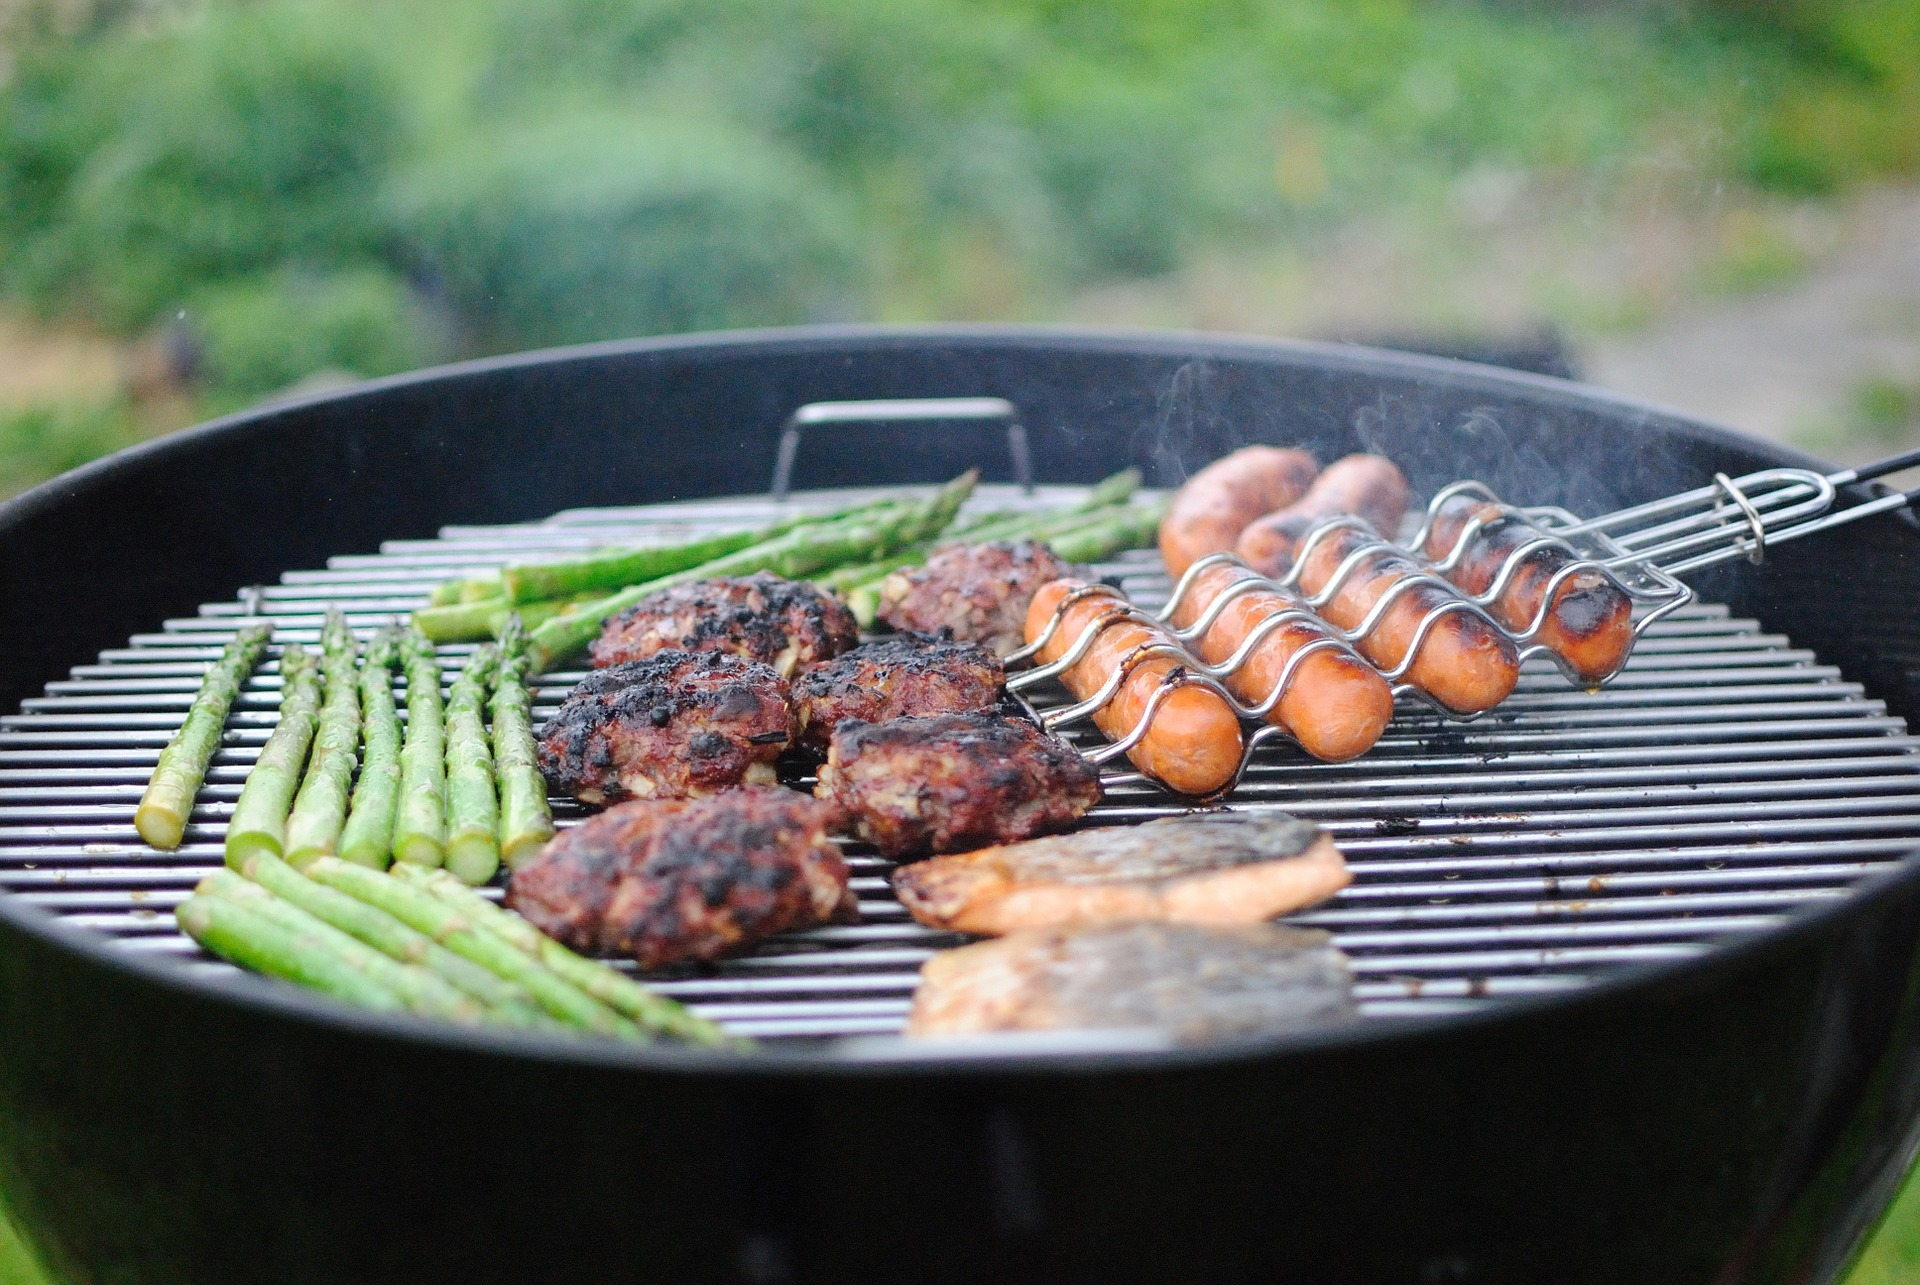 Grilling, Barbecue, Grill, Food, Summer